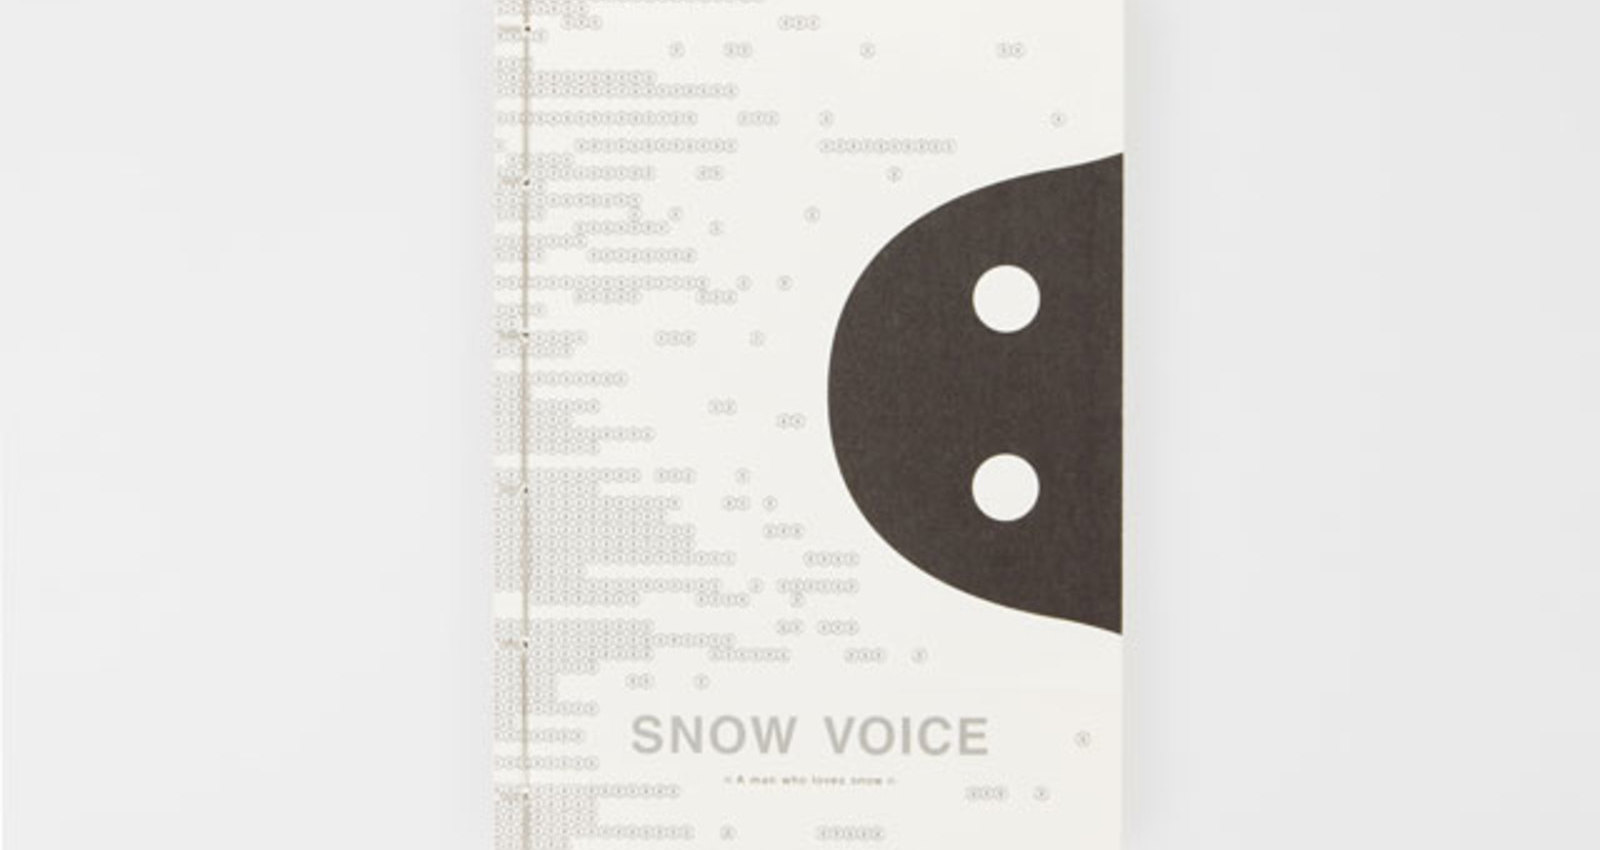 SNOW VOICE - A man who loves snow - Booklet@for Haiku Event